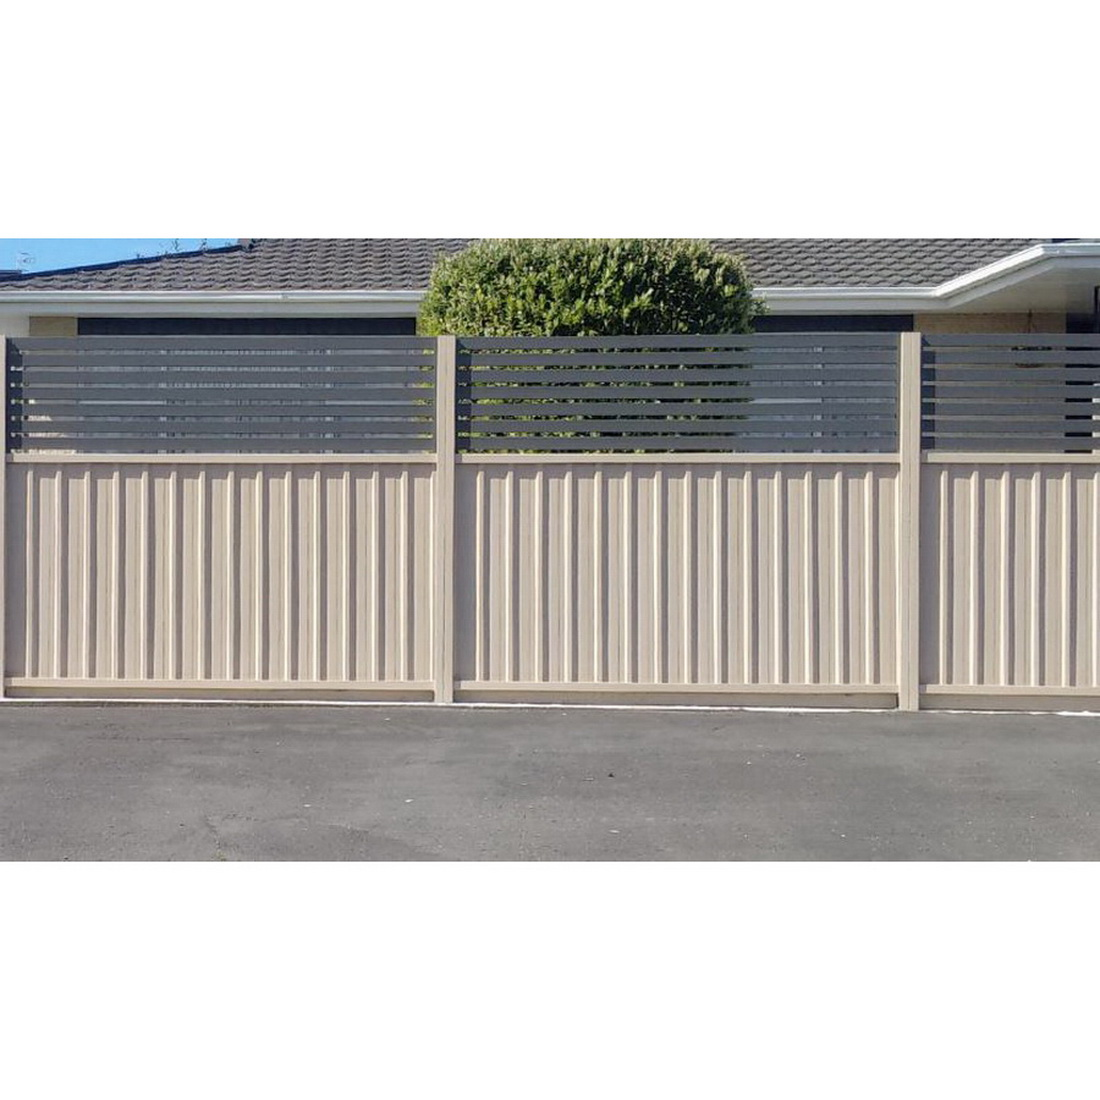 Borderline 1.2/3 Fence Panel 1500 x 2300mm Gull Grey